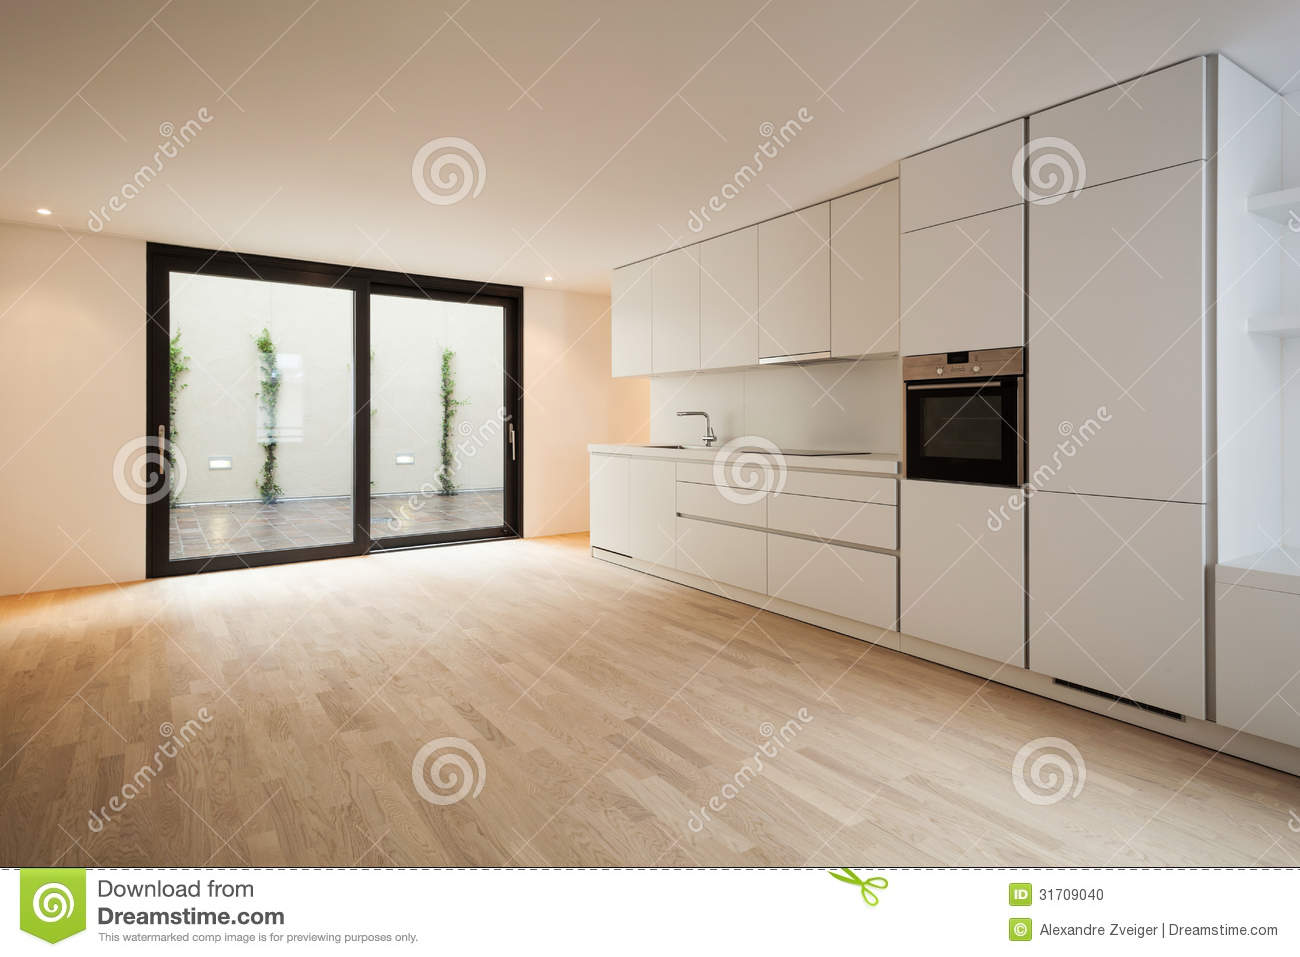 Cuisine Blanche Moderne Photo stock - Image: 31709040